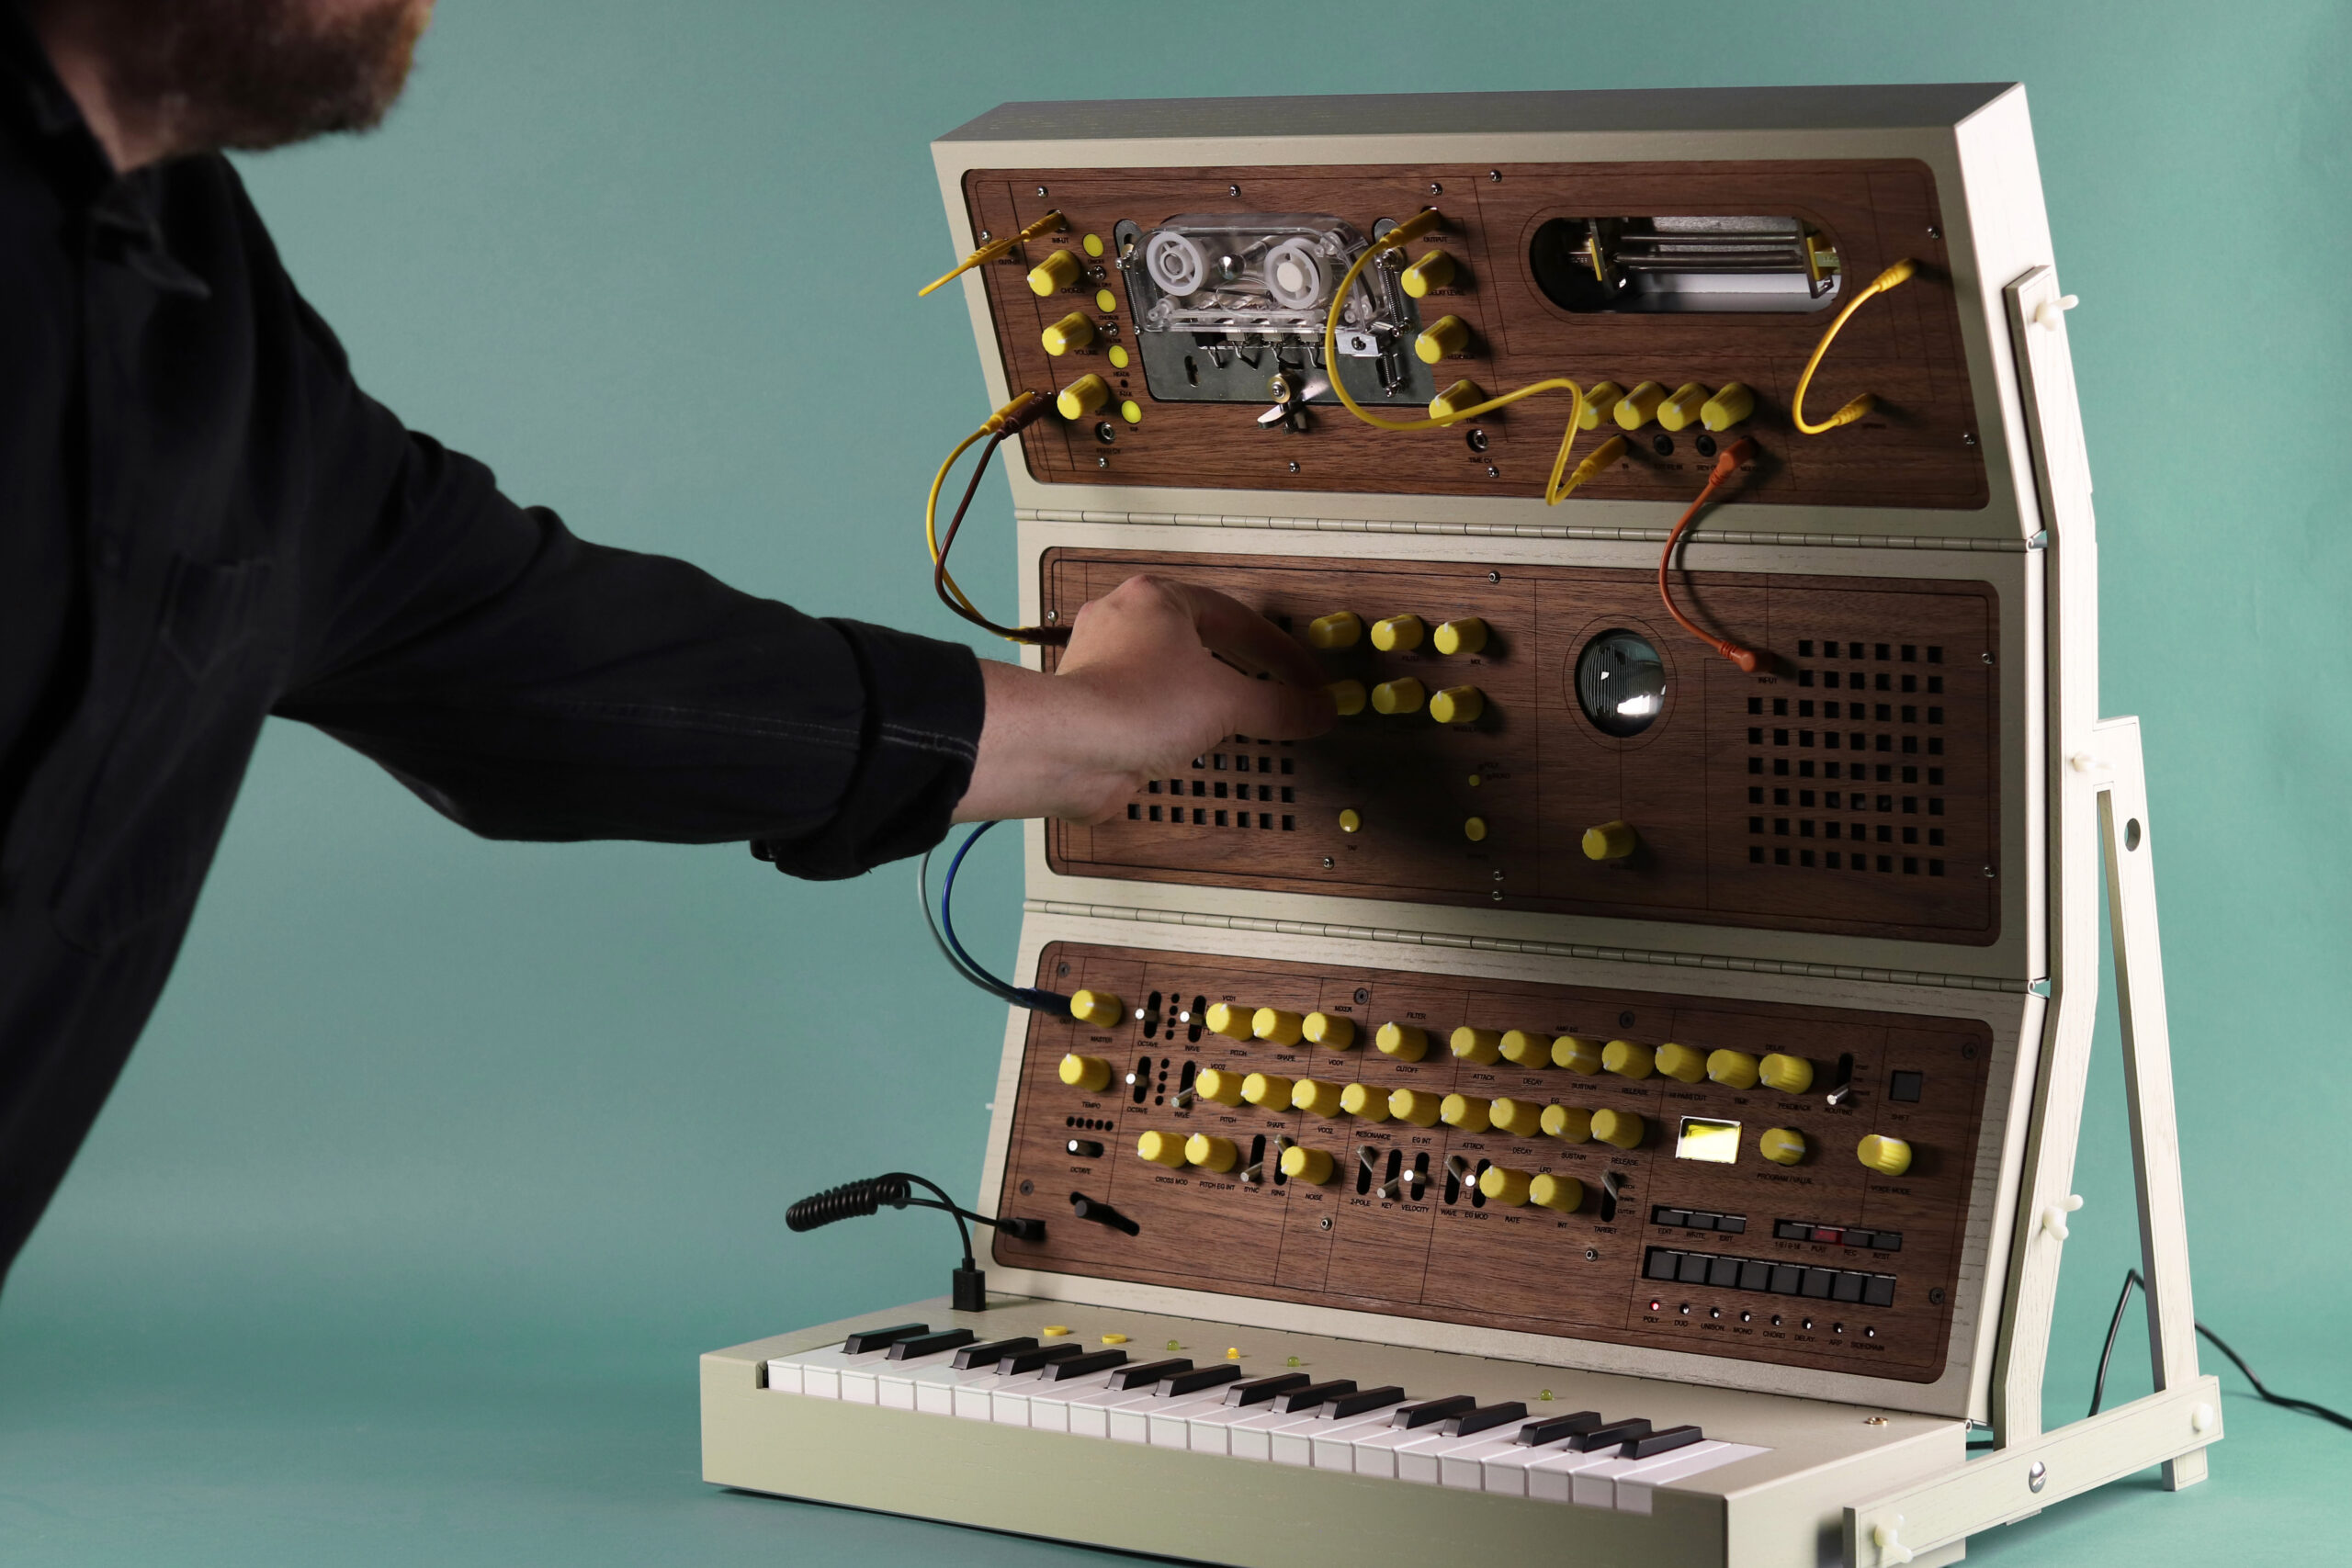 Check out this amazing handmade modular synthesizer